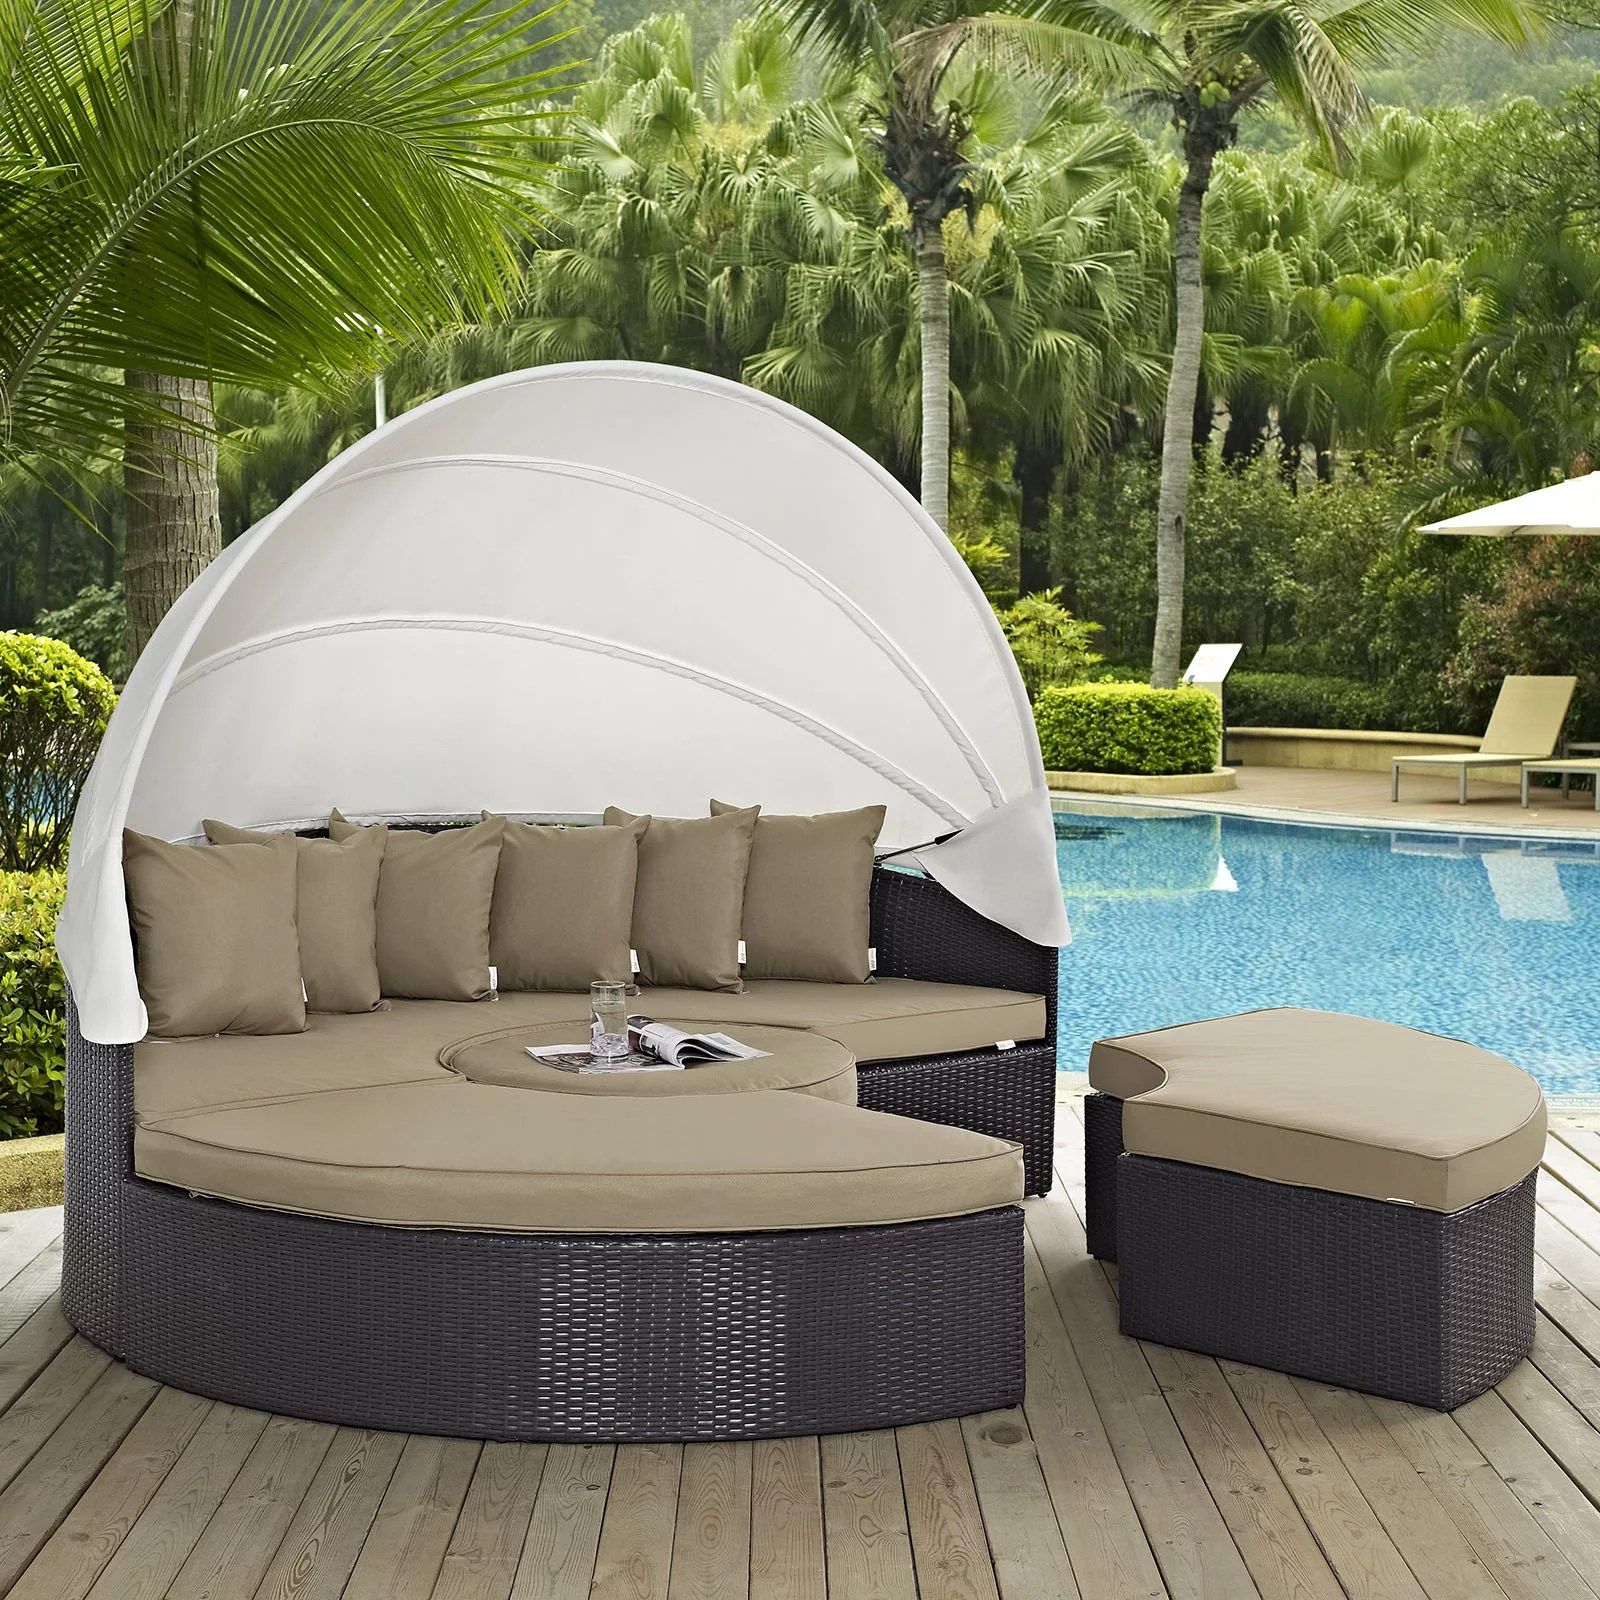 Modway Convene 5 Piece Canopy Outdoor Patio Daybed